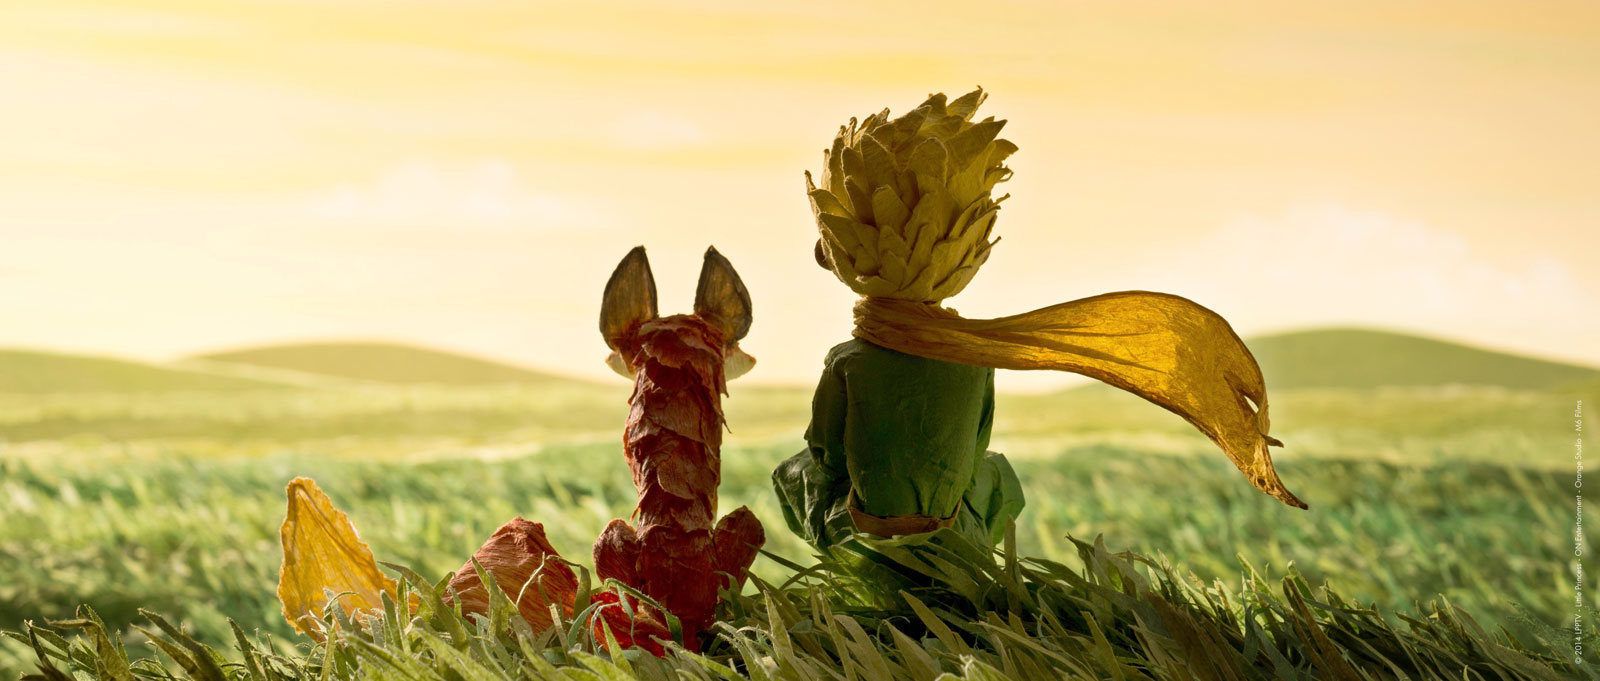 The Little Prince-PROMO-30JANEIRO2015-03